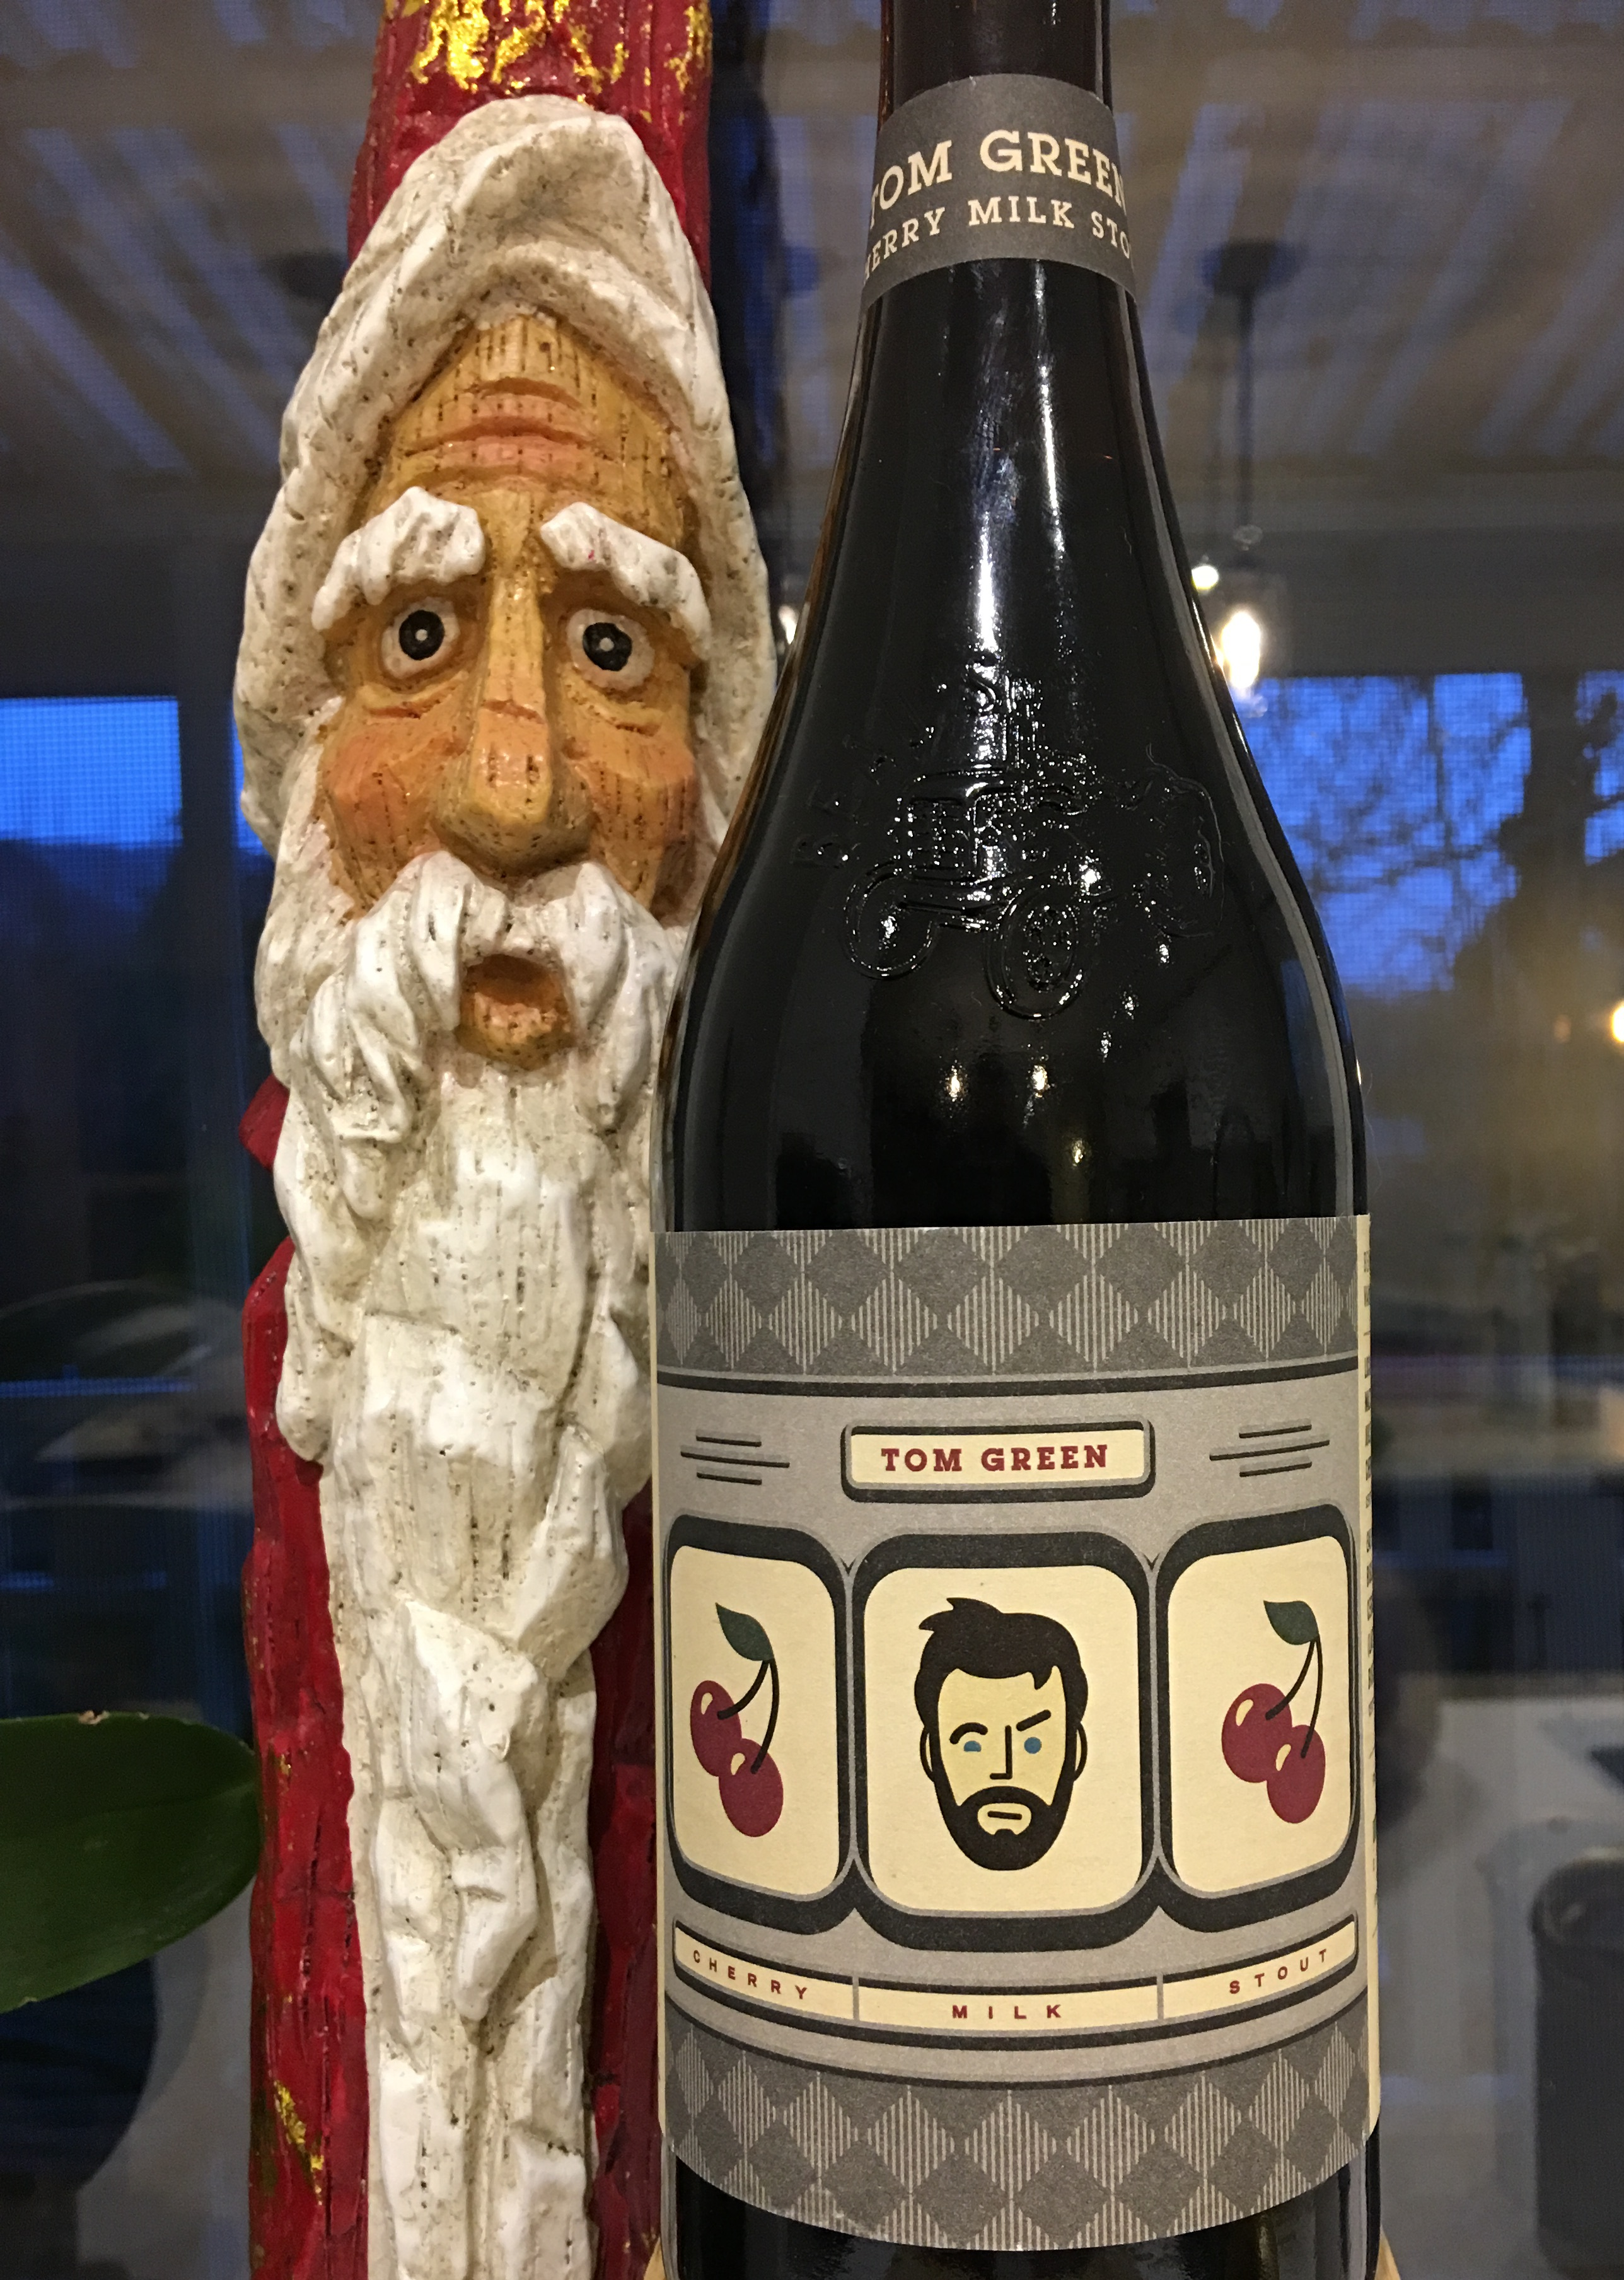 The Tom Green Cherry Milk Stout…